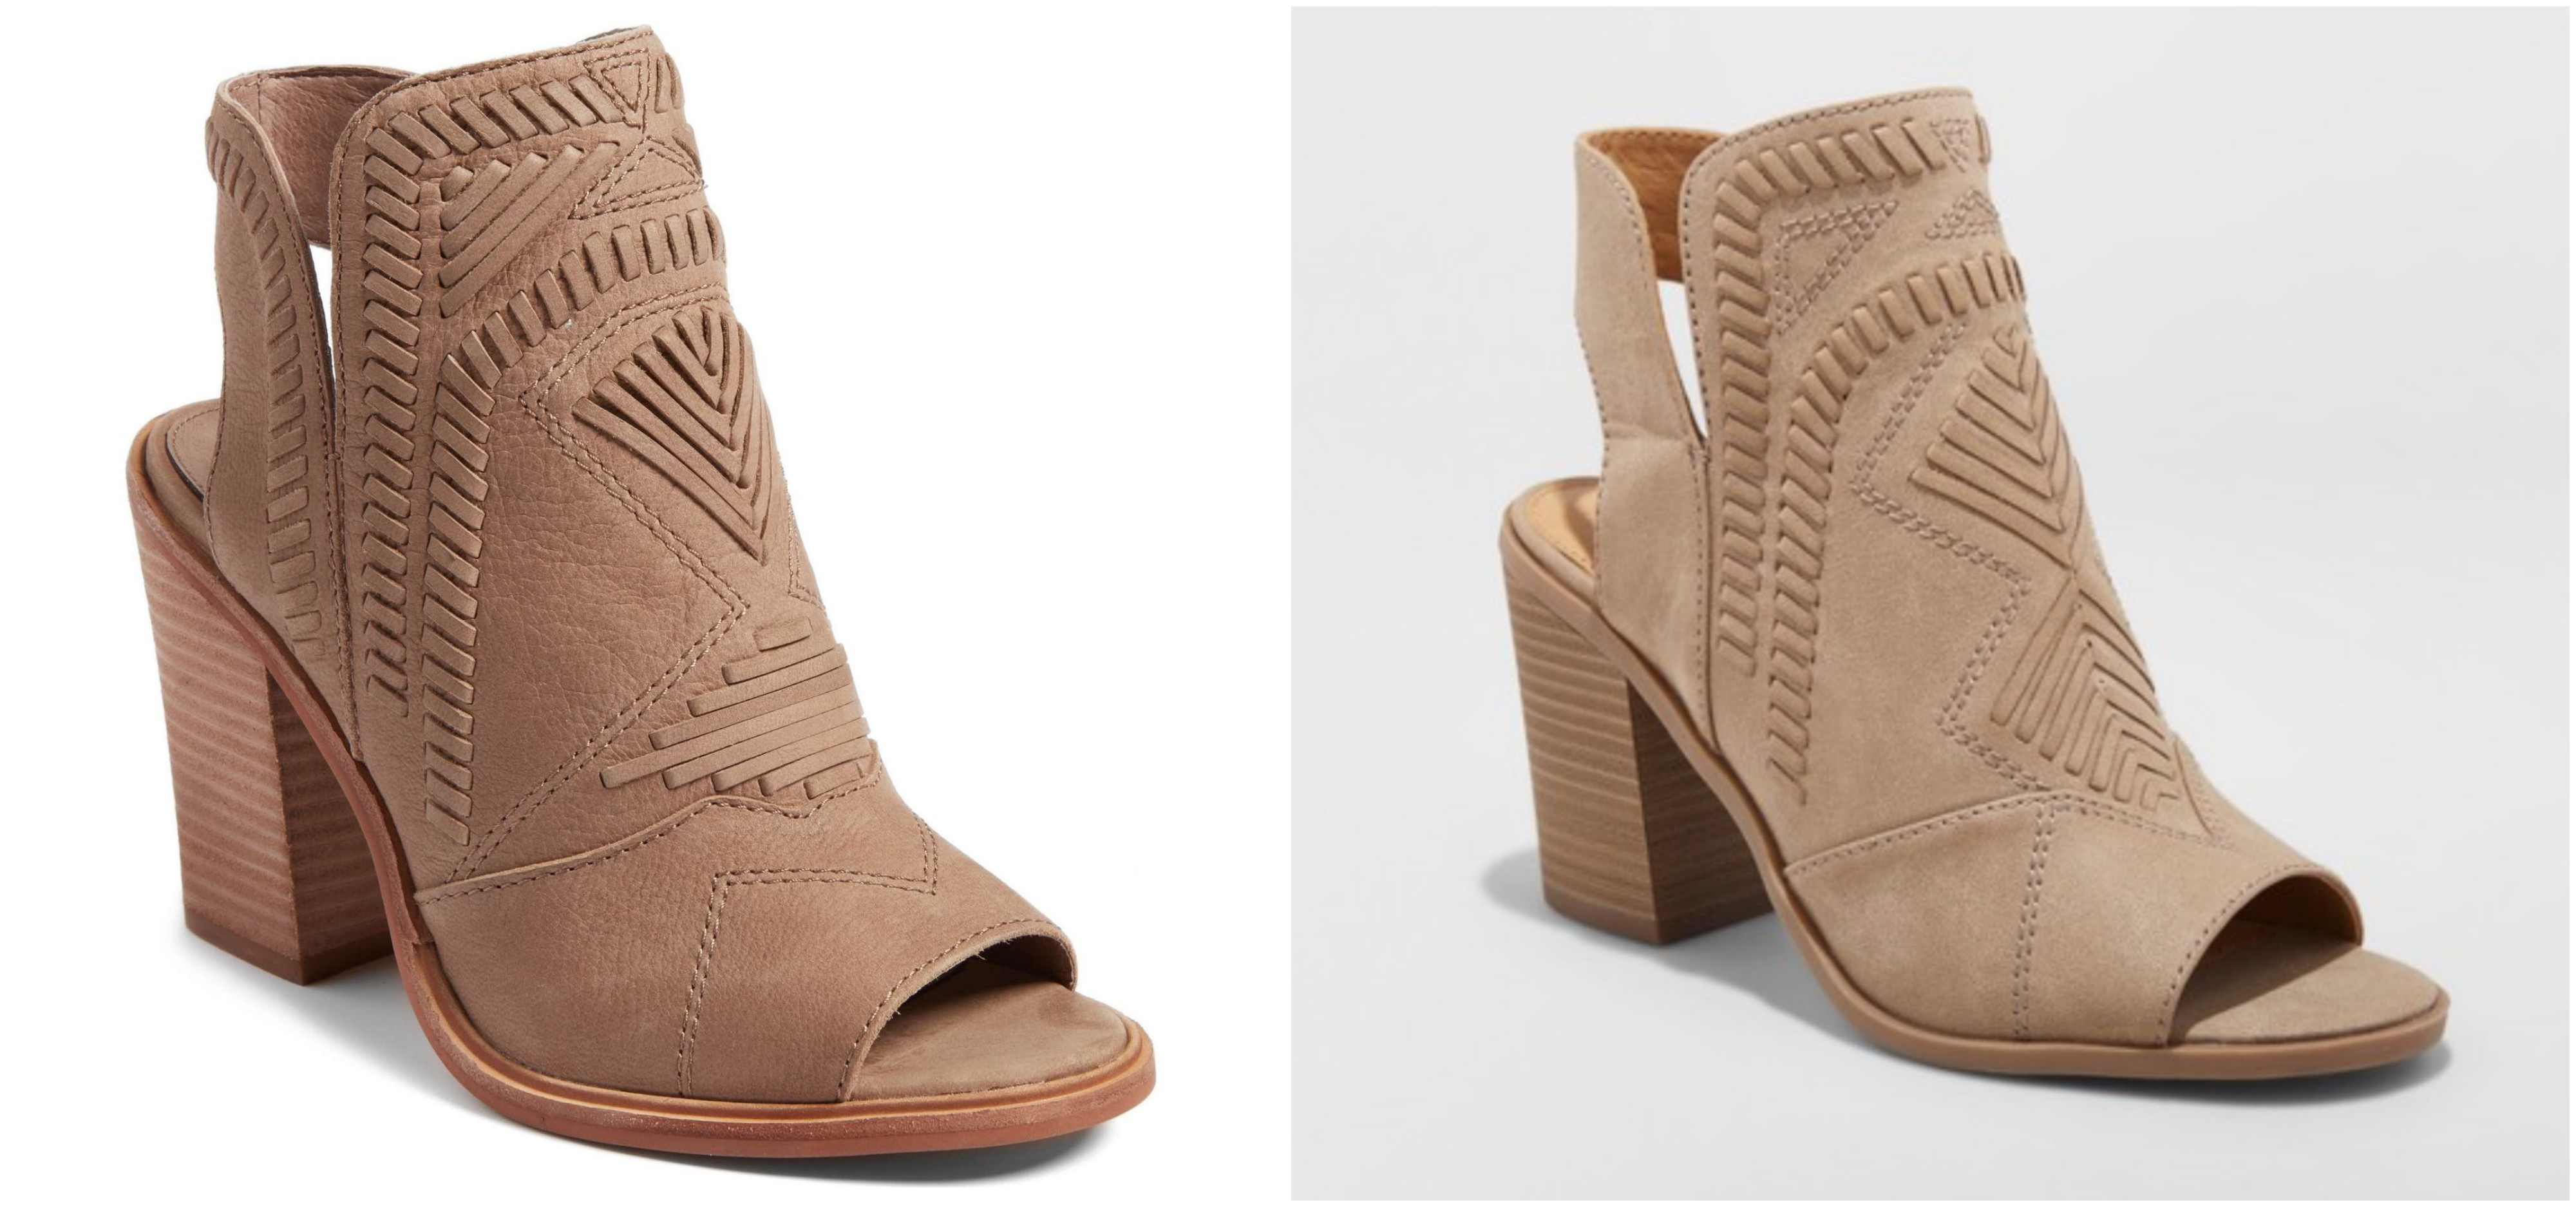 Open Toe Bootie - Best Target Shoe Dupes - Communikait by Kait Hanson